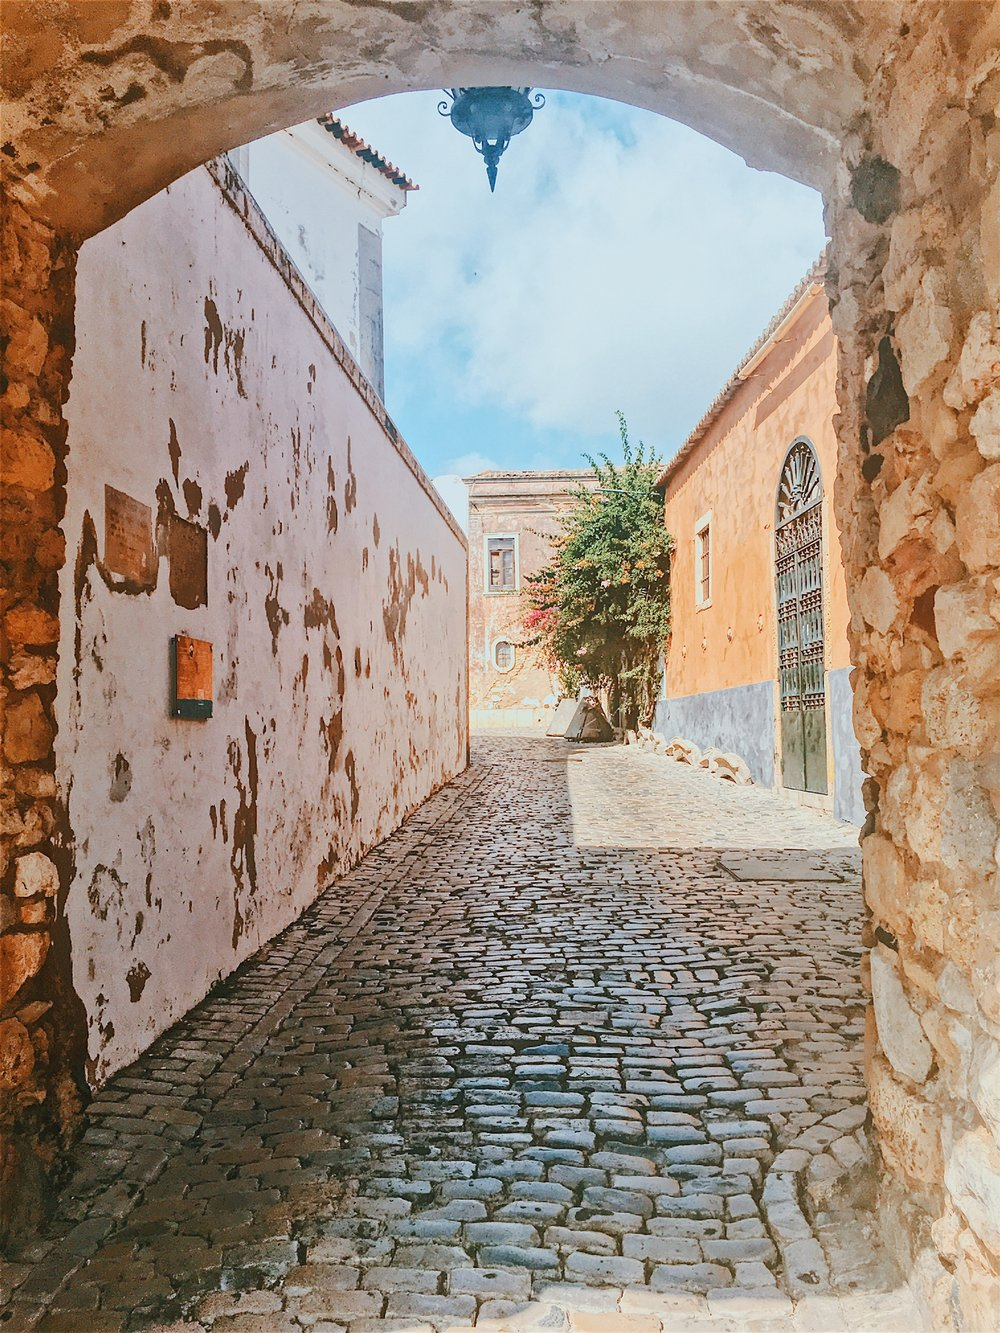 A beautiful archway over a cobblestone street